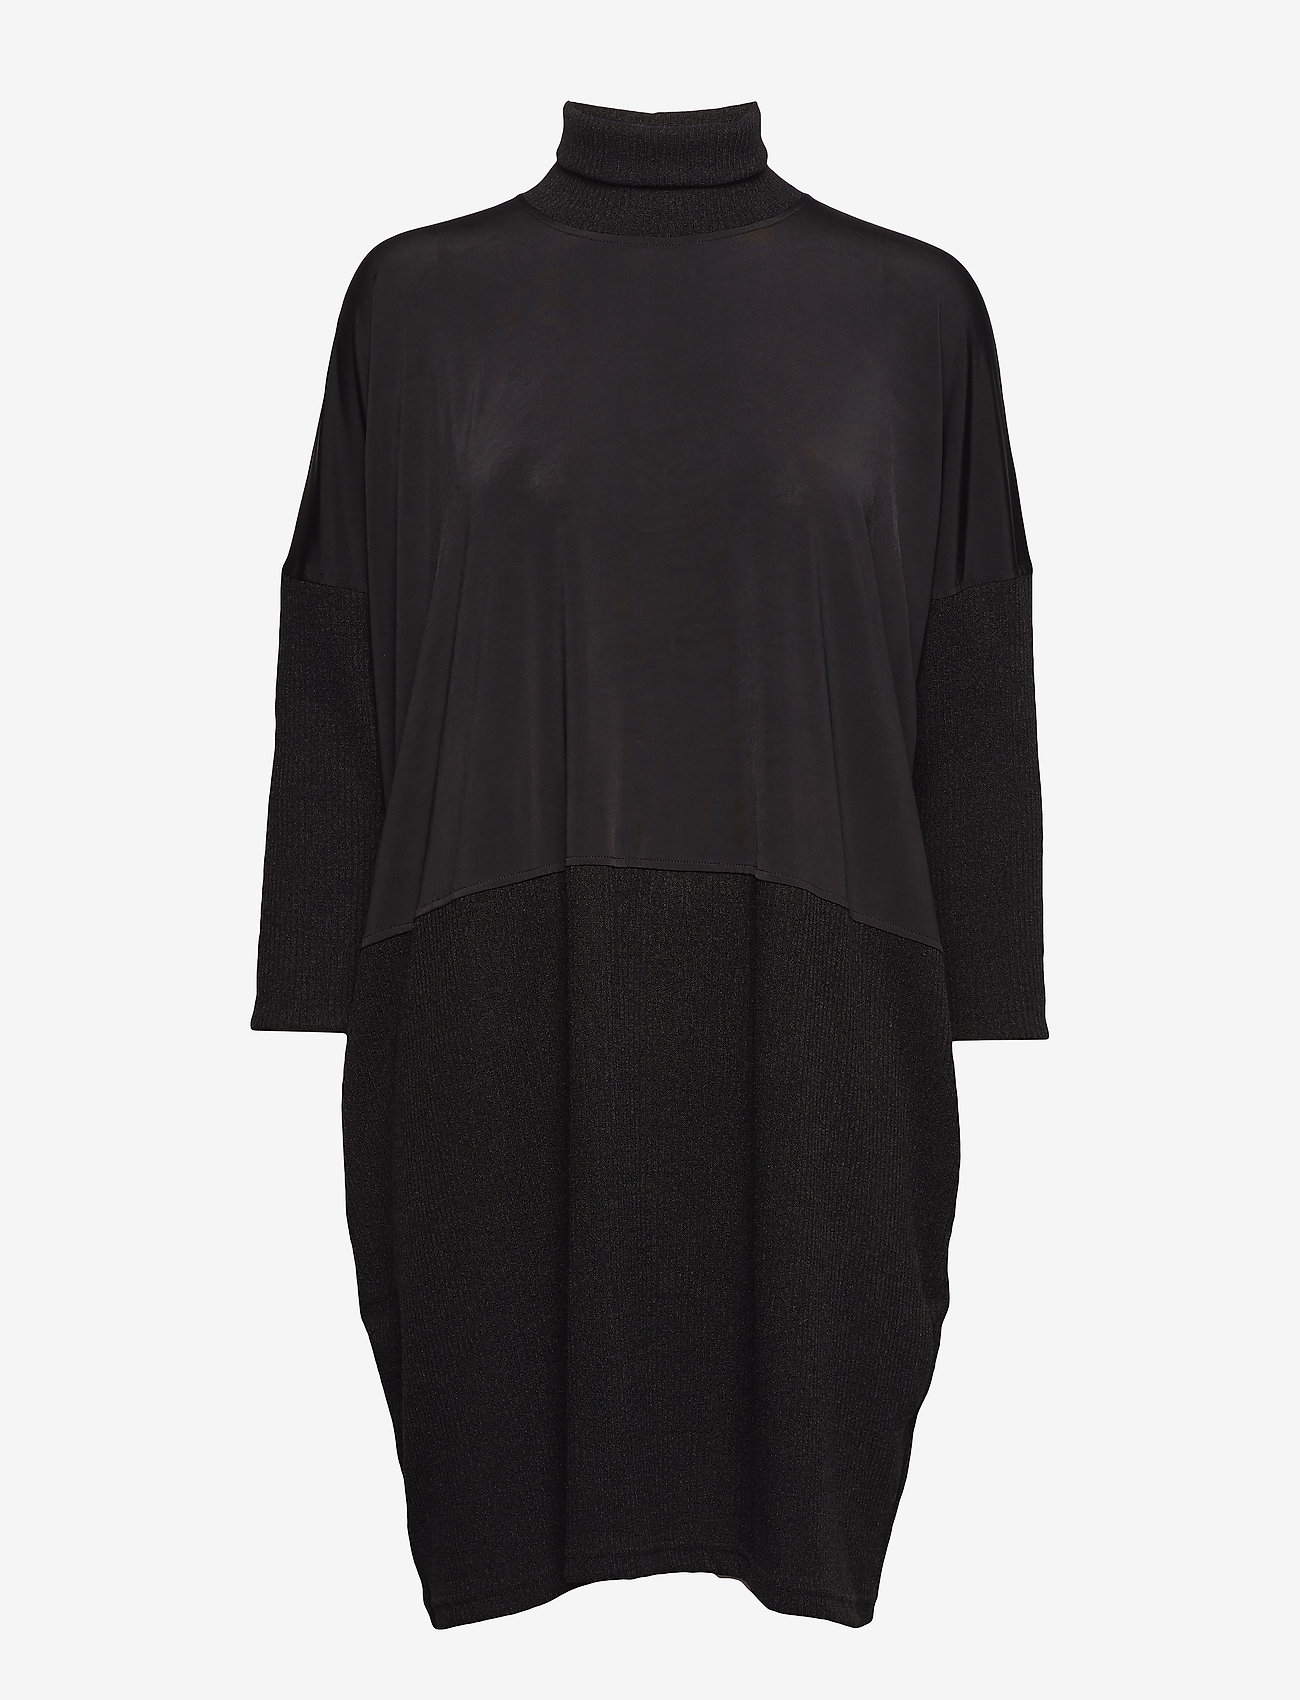 Diana Orving - Polo dress - knitted dresses - black